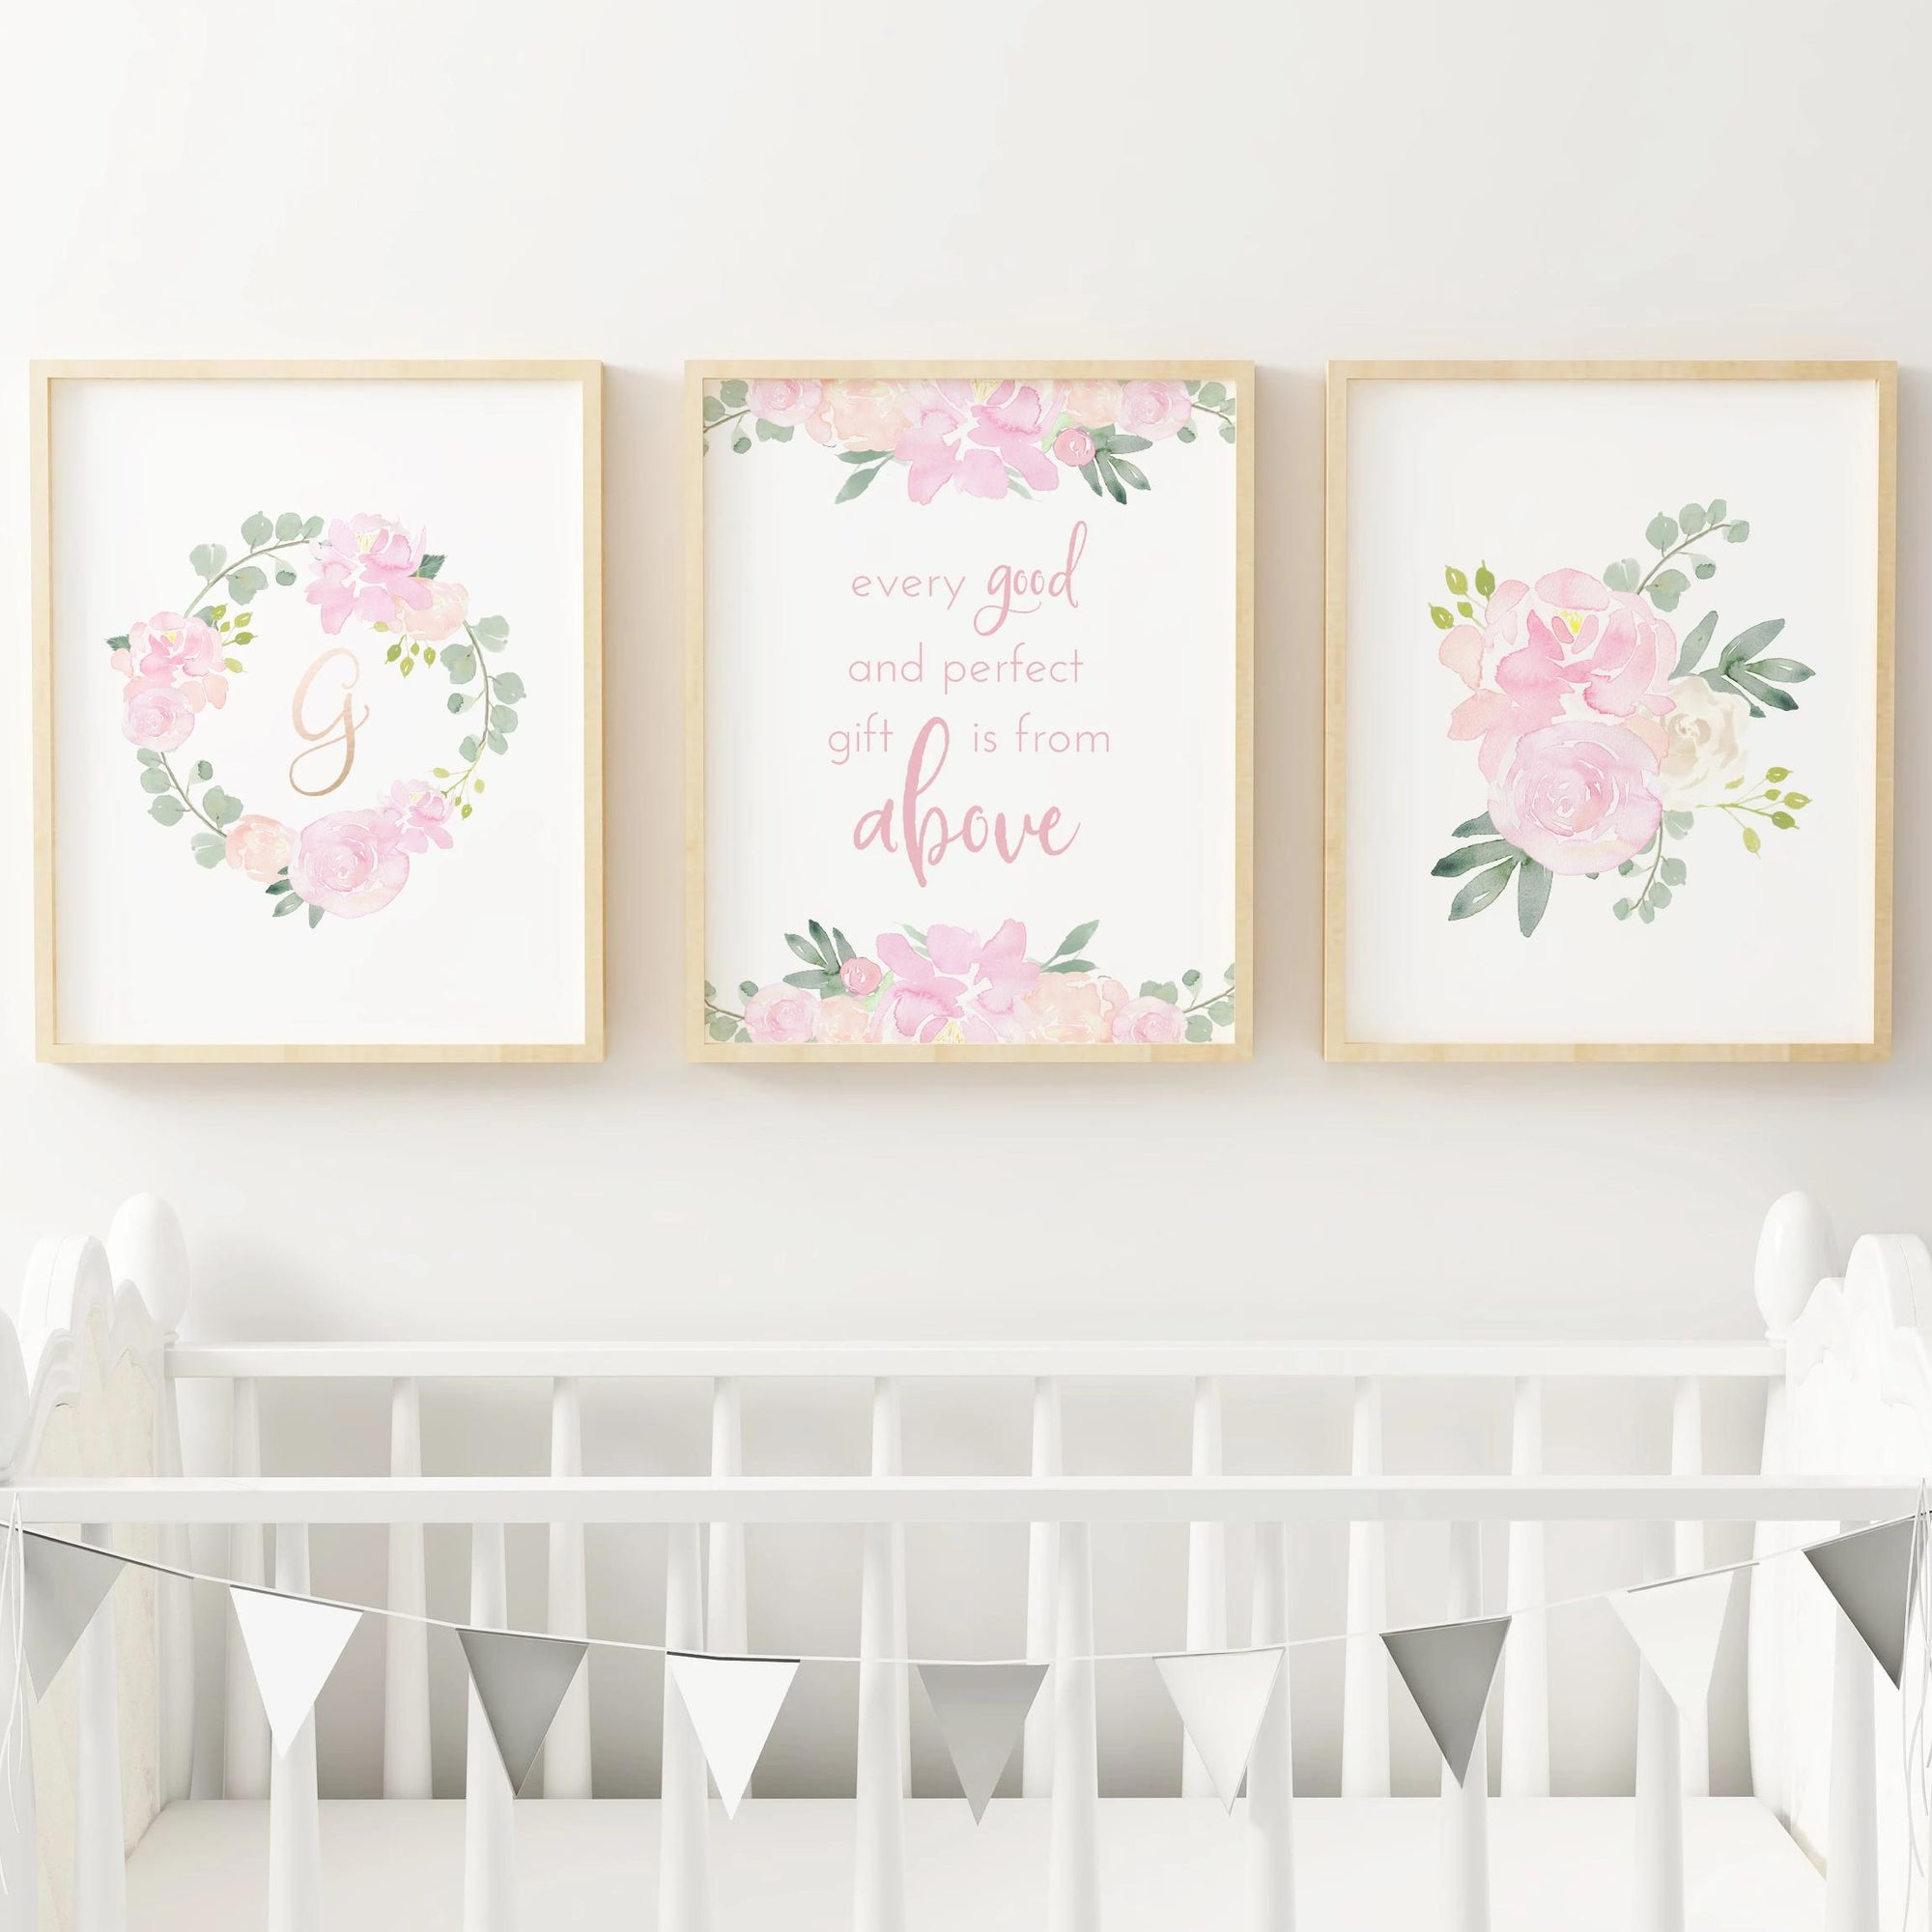 Light Pink #1 // Set of 3 Prints Nursery Prints TheGracefulGoose